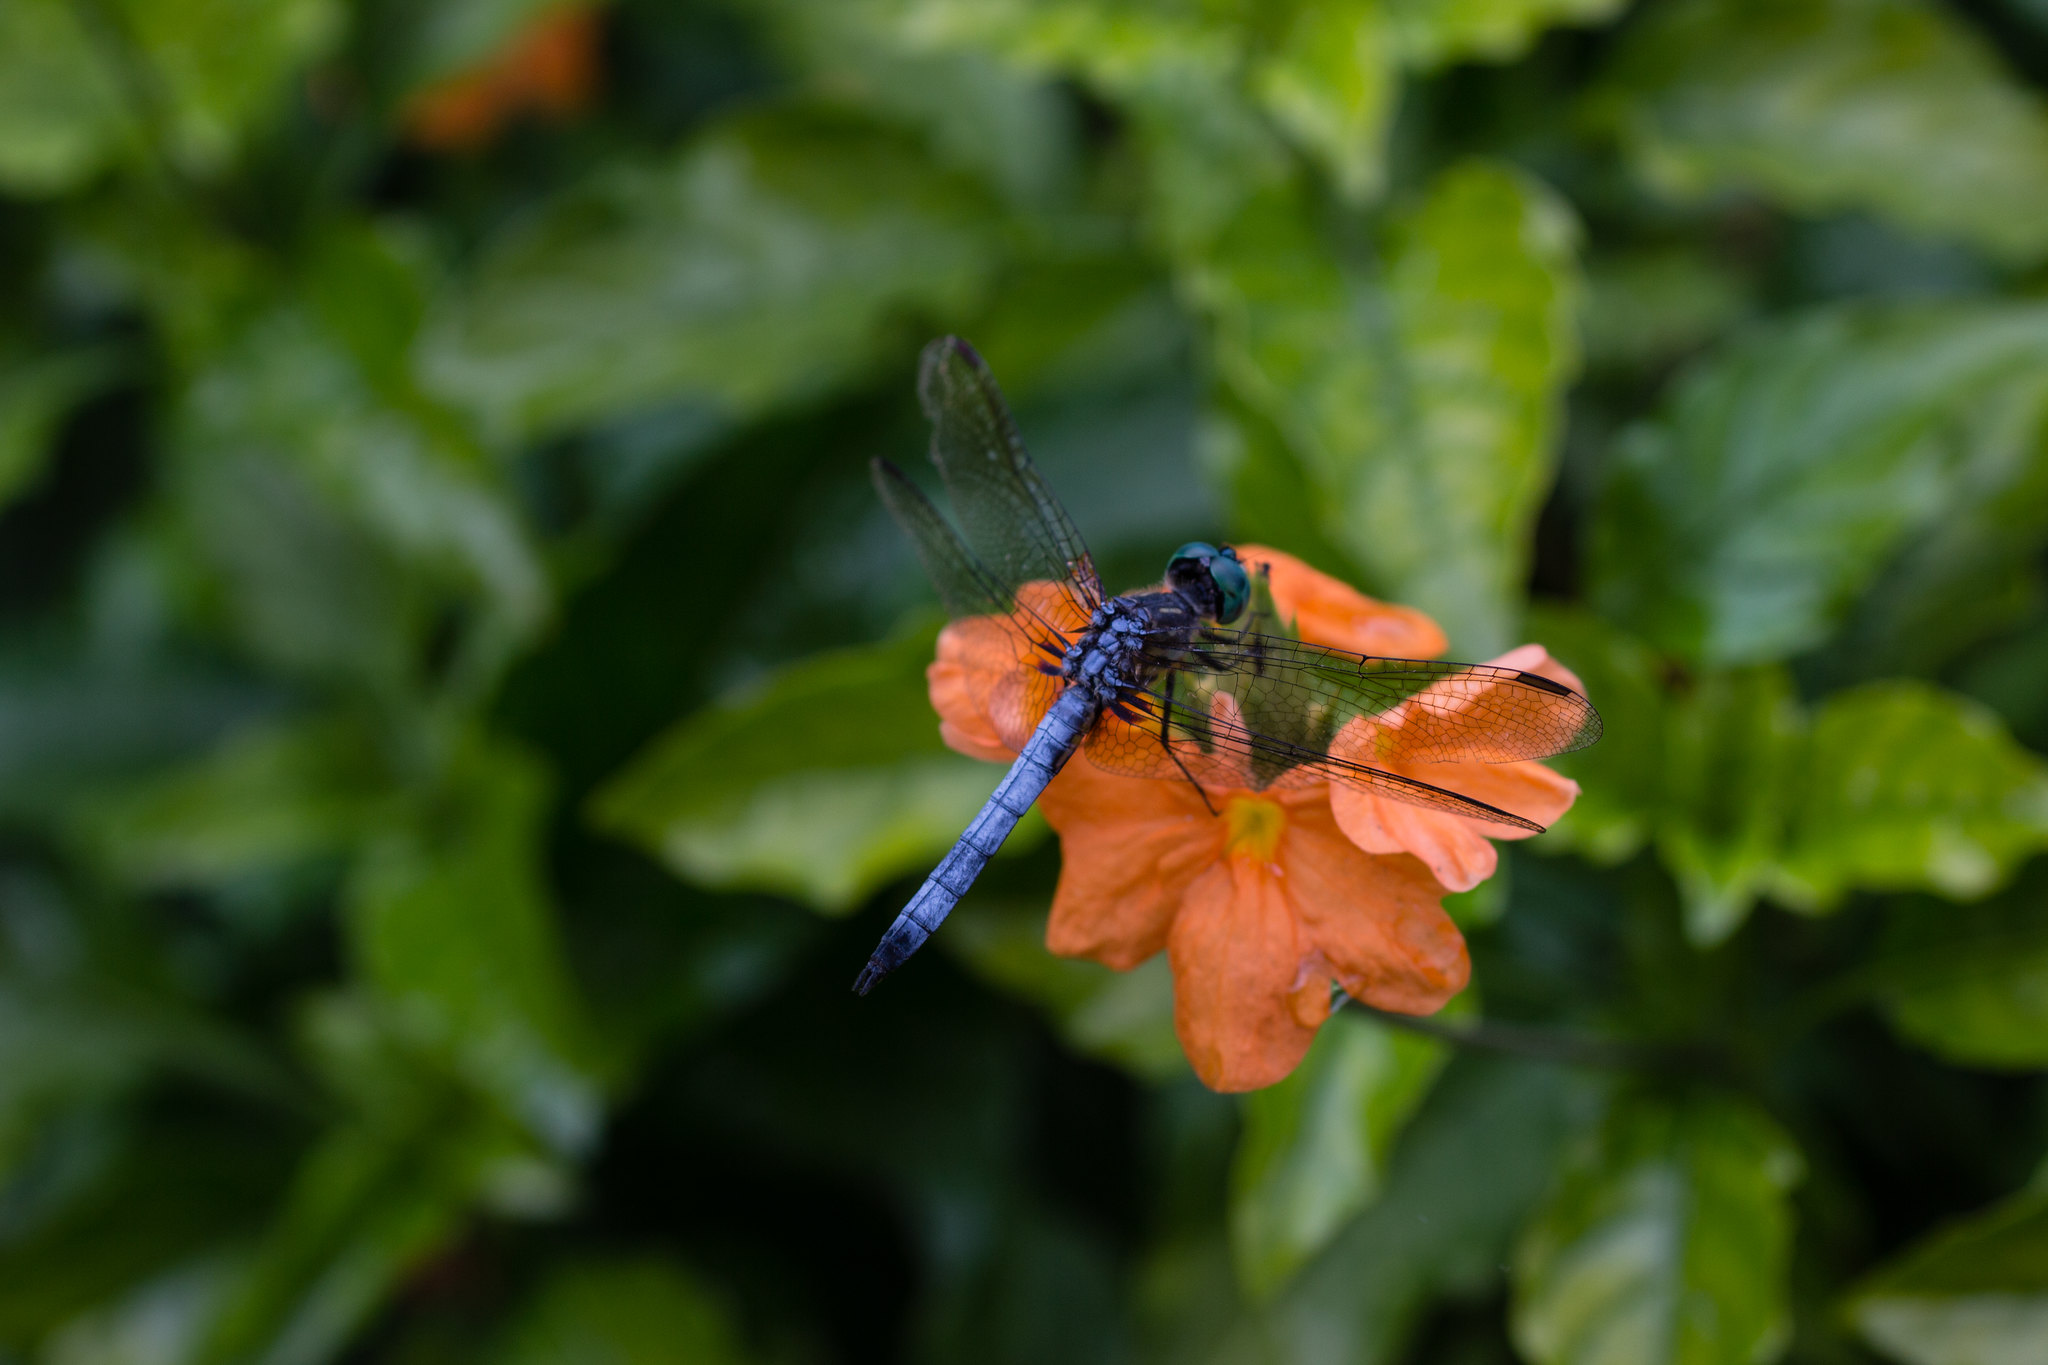 love the contrast between the cantaloupe color and the blue of the dragonfly